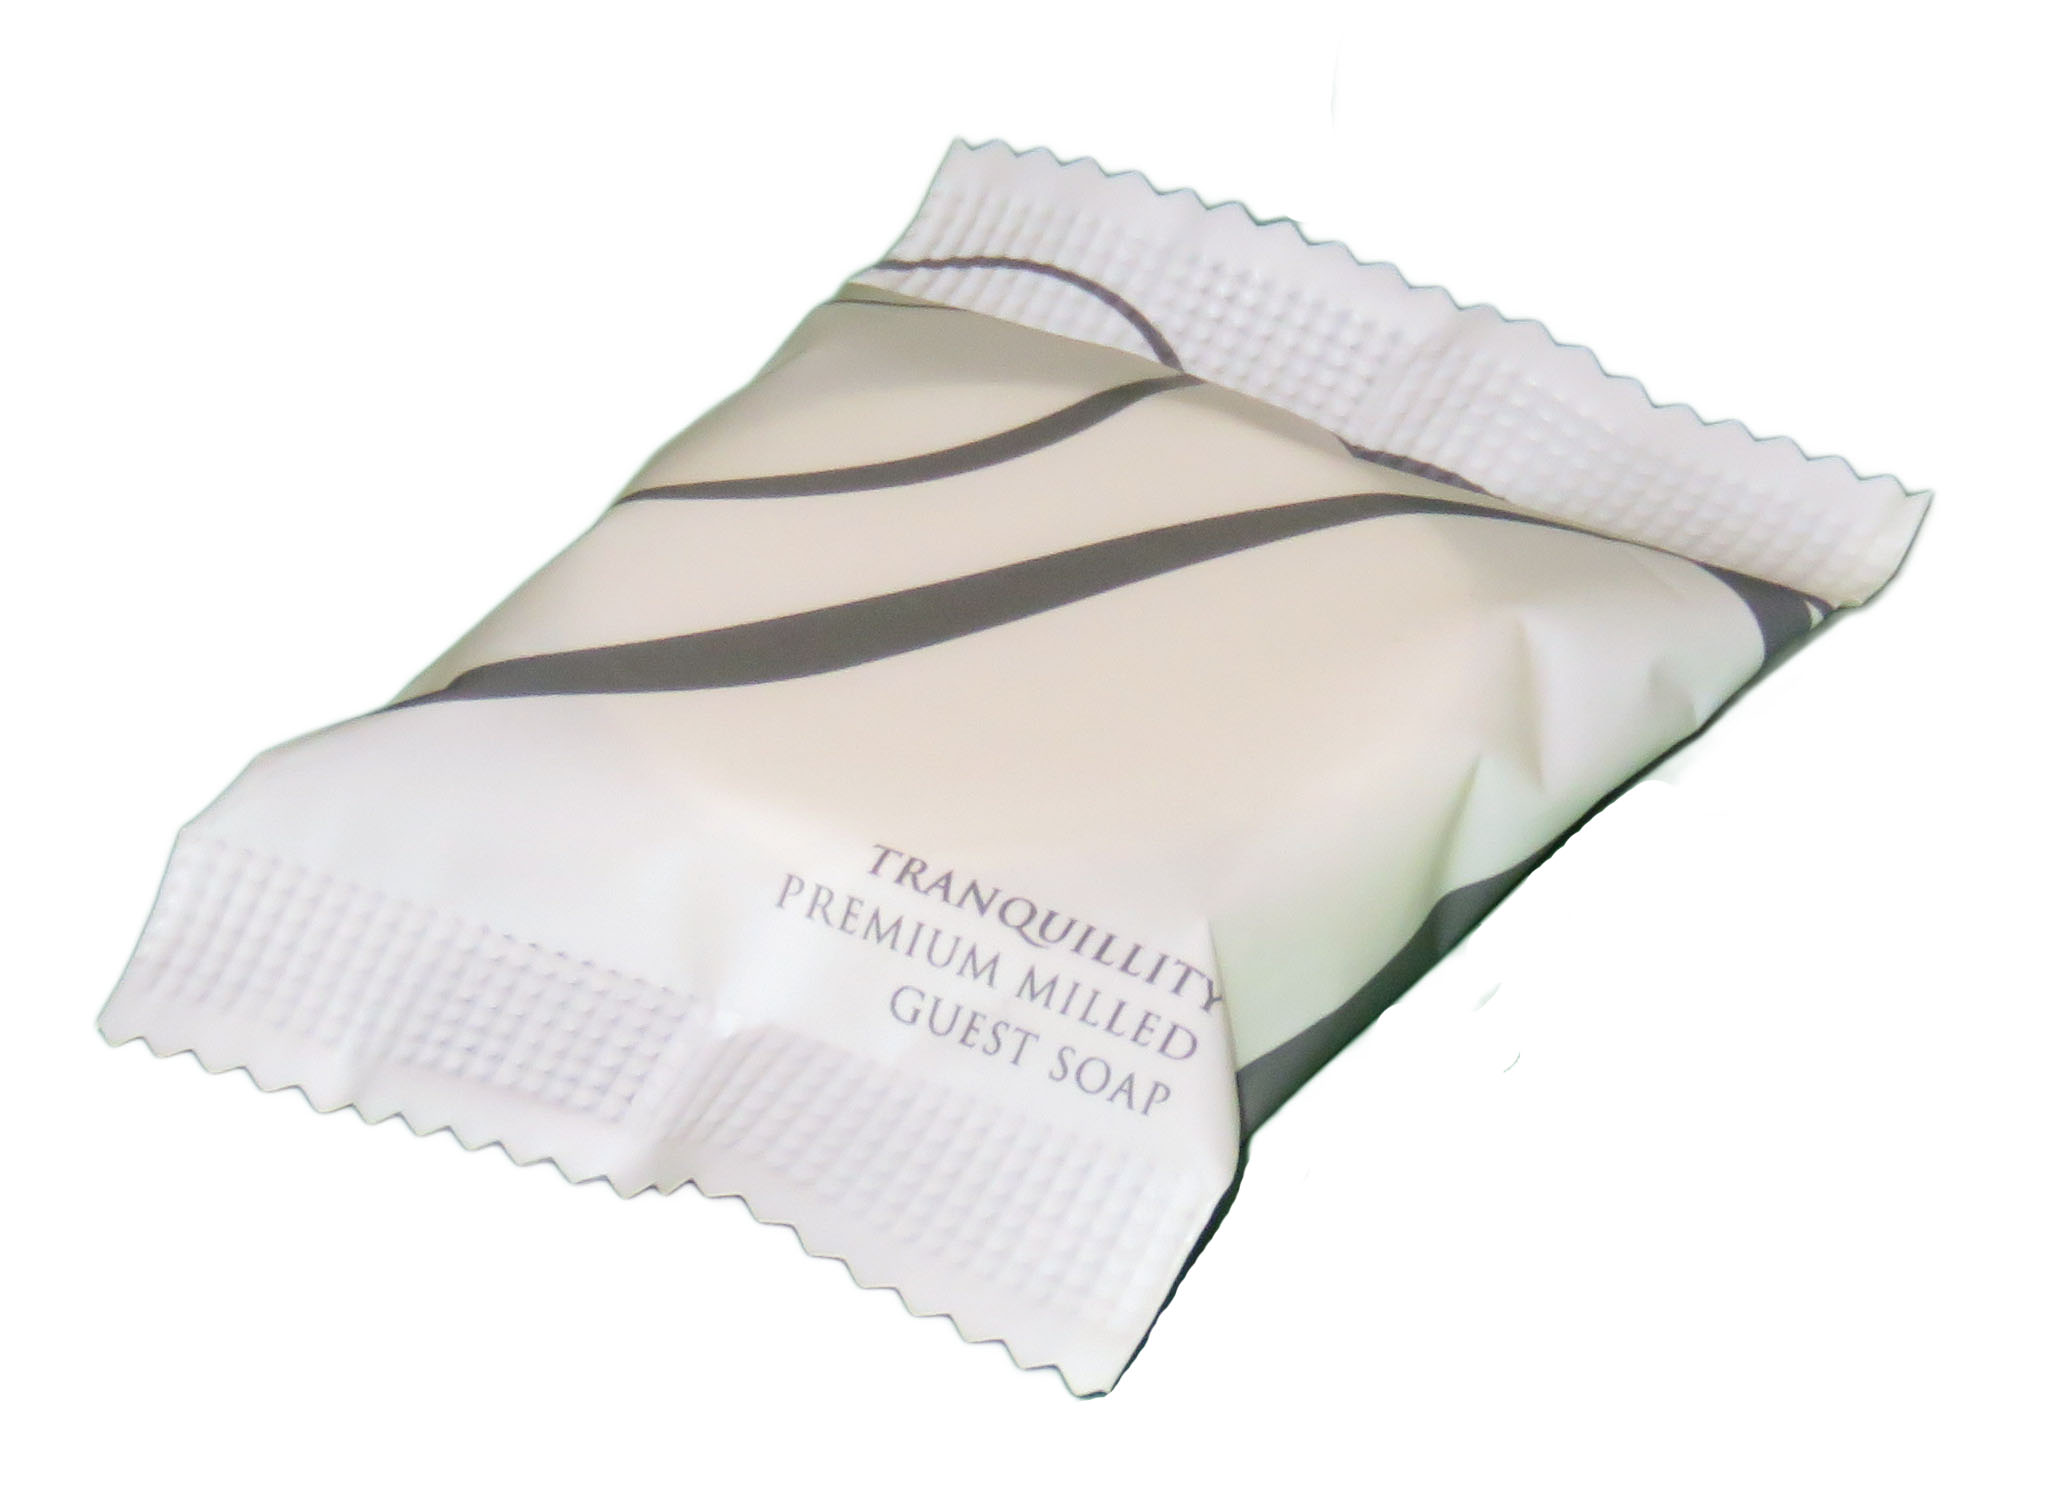 Tranquillity Flow Wrapped Guest Soap